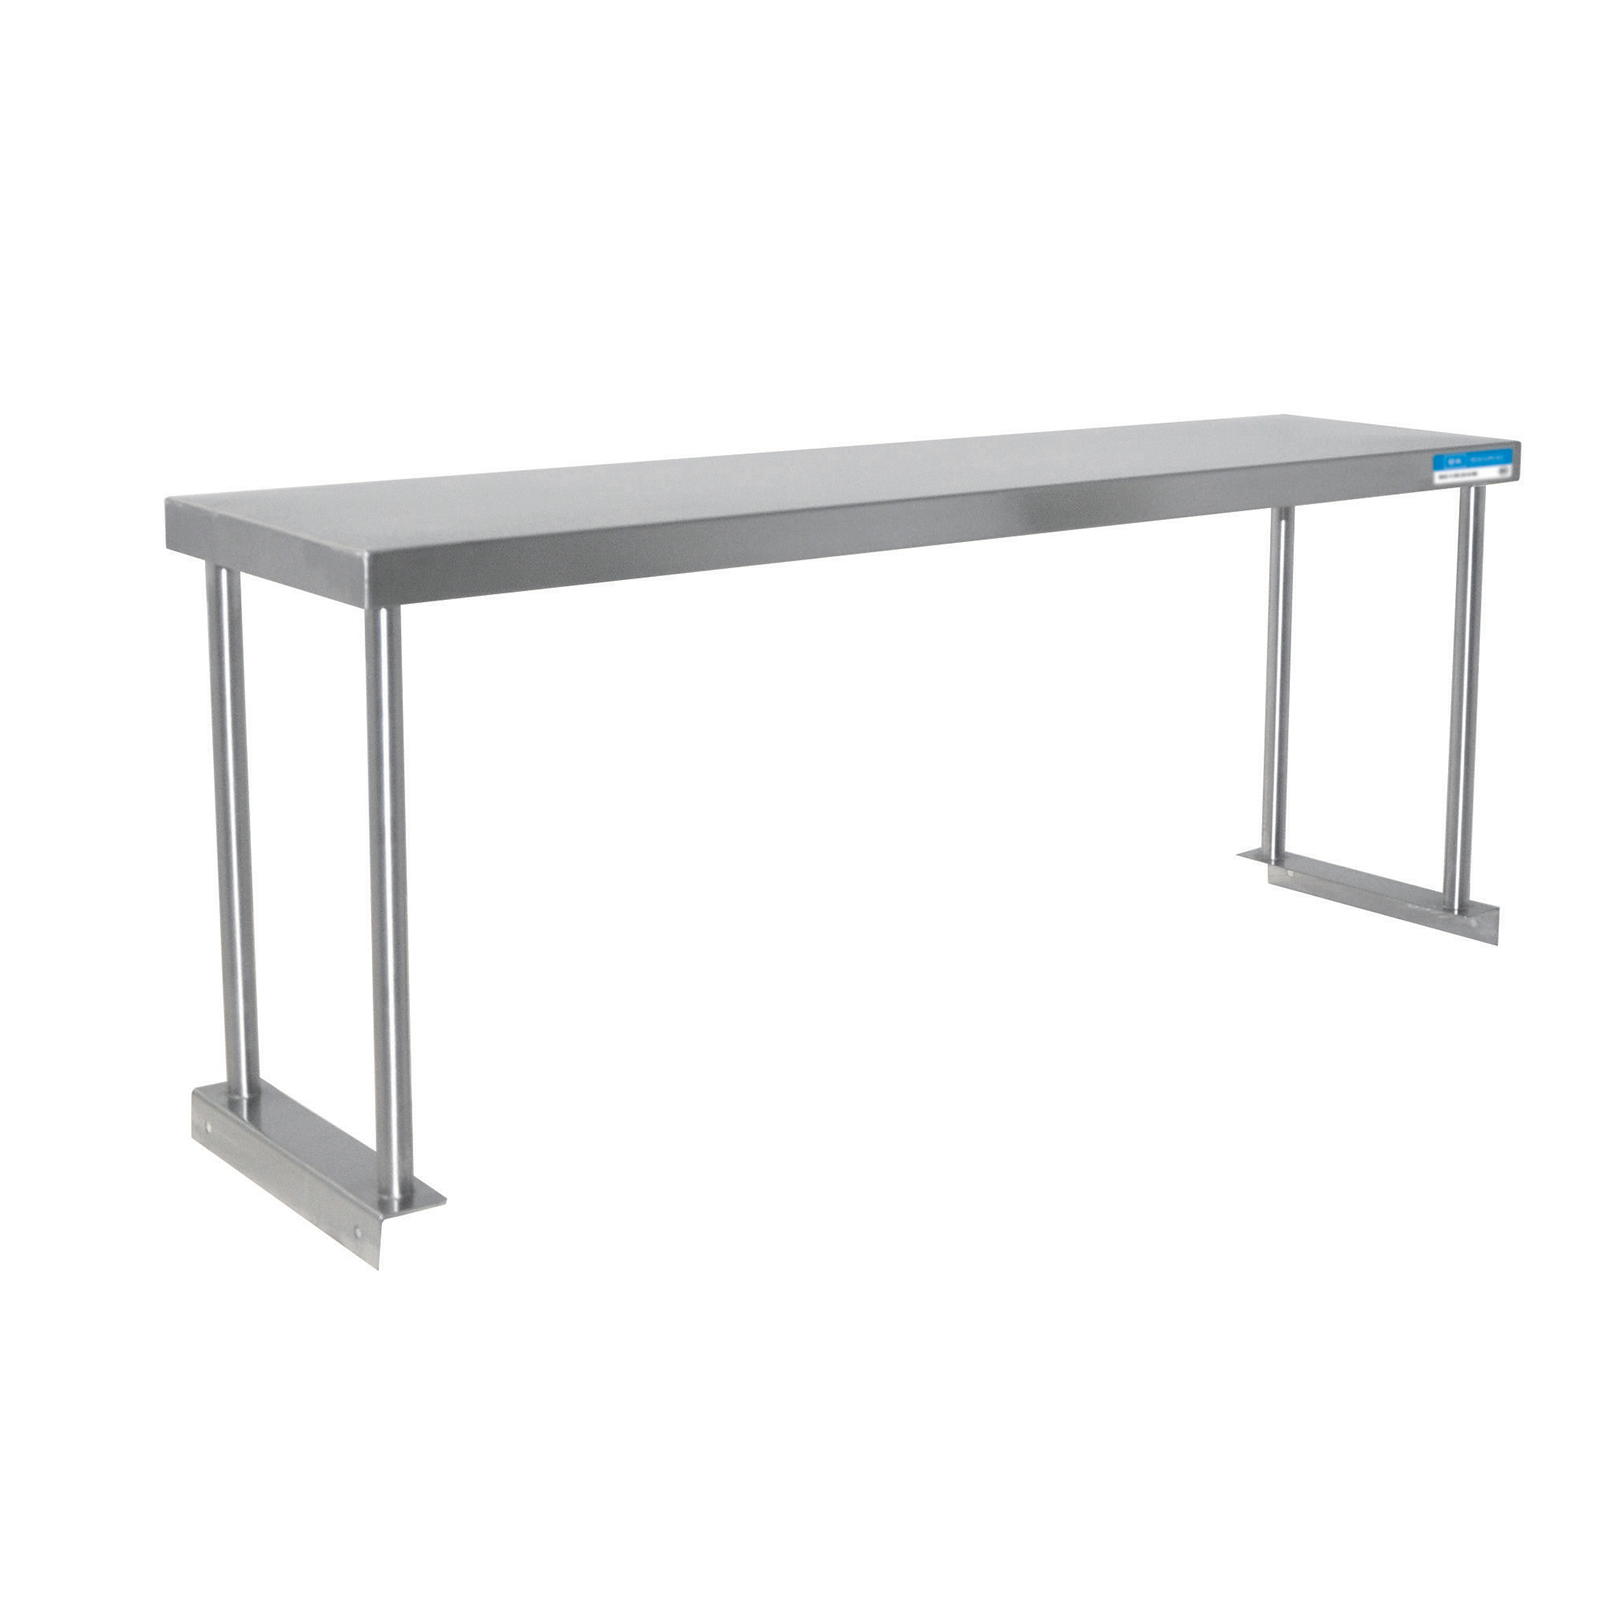 BK Resources BK-OSS-1848 overshelf, table-mounted